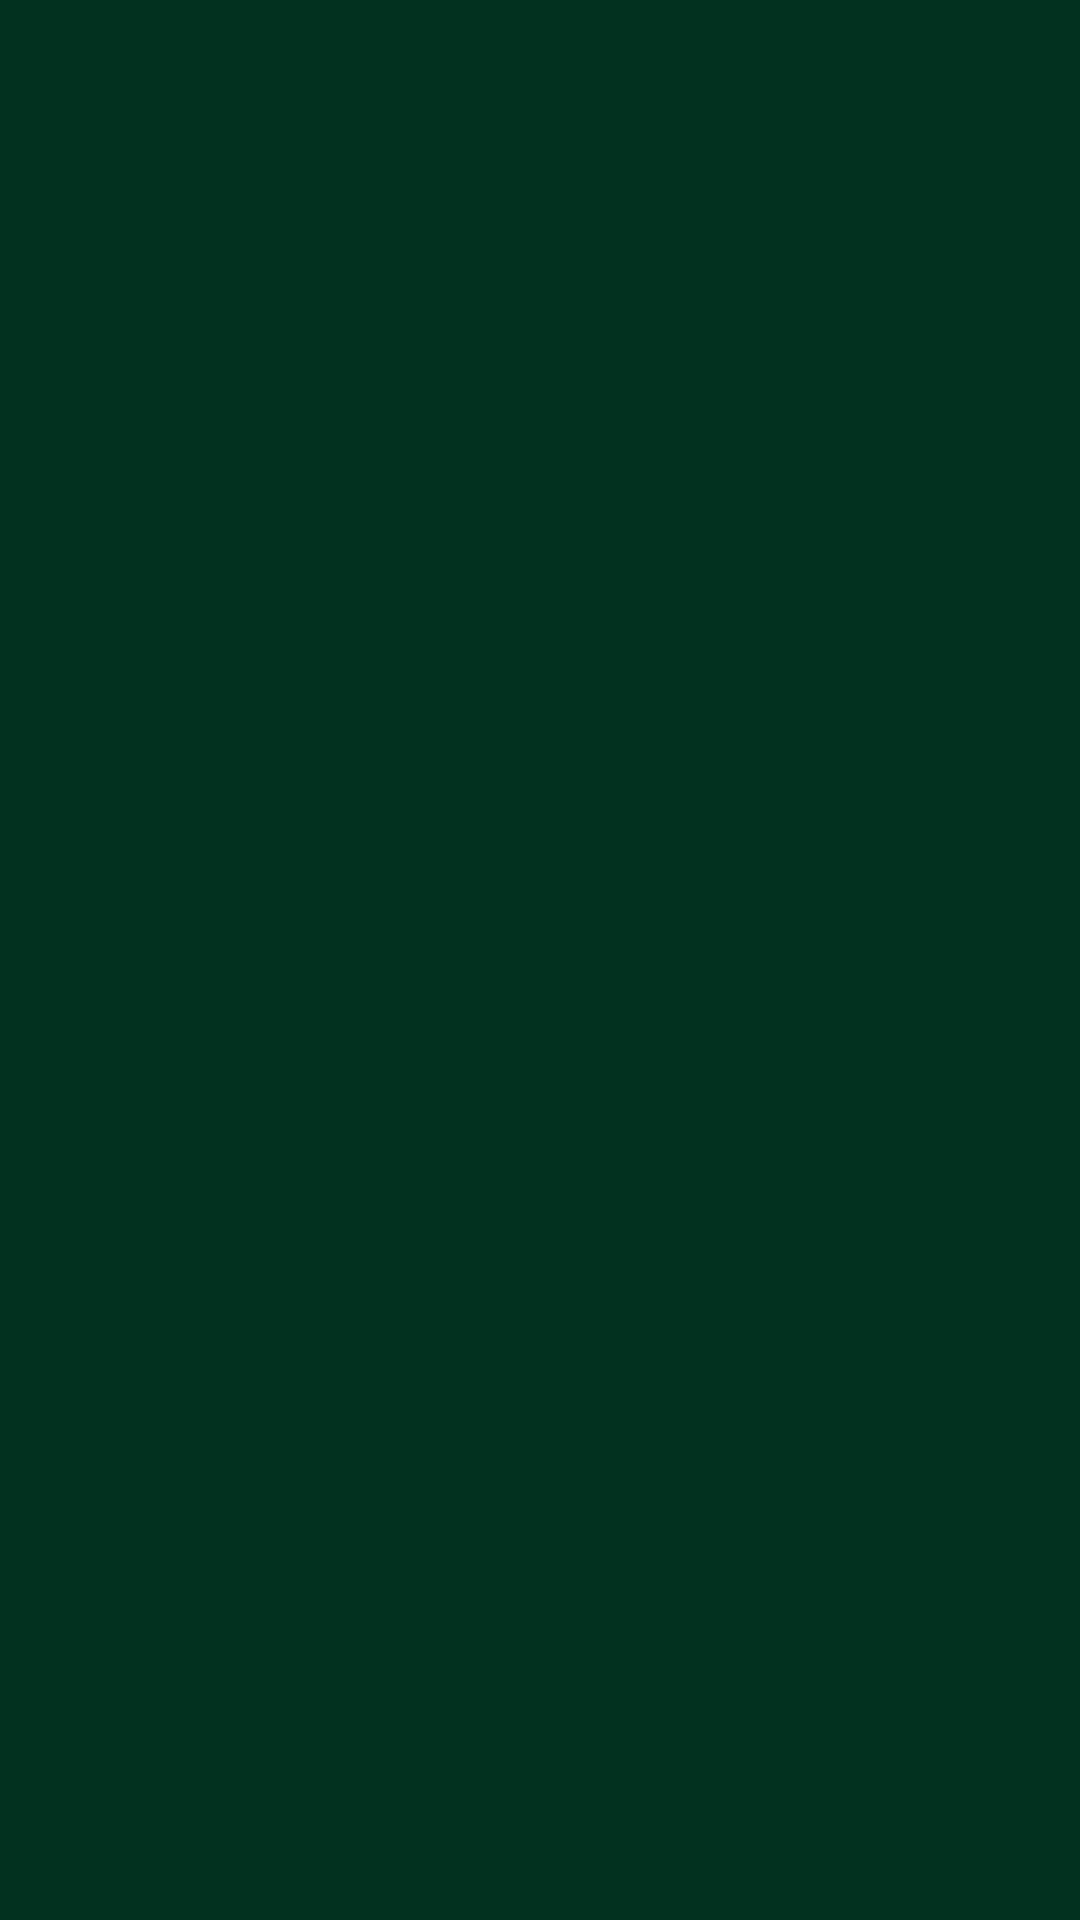 1080x1920 Dark Green Solid Color Background